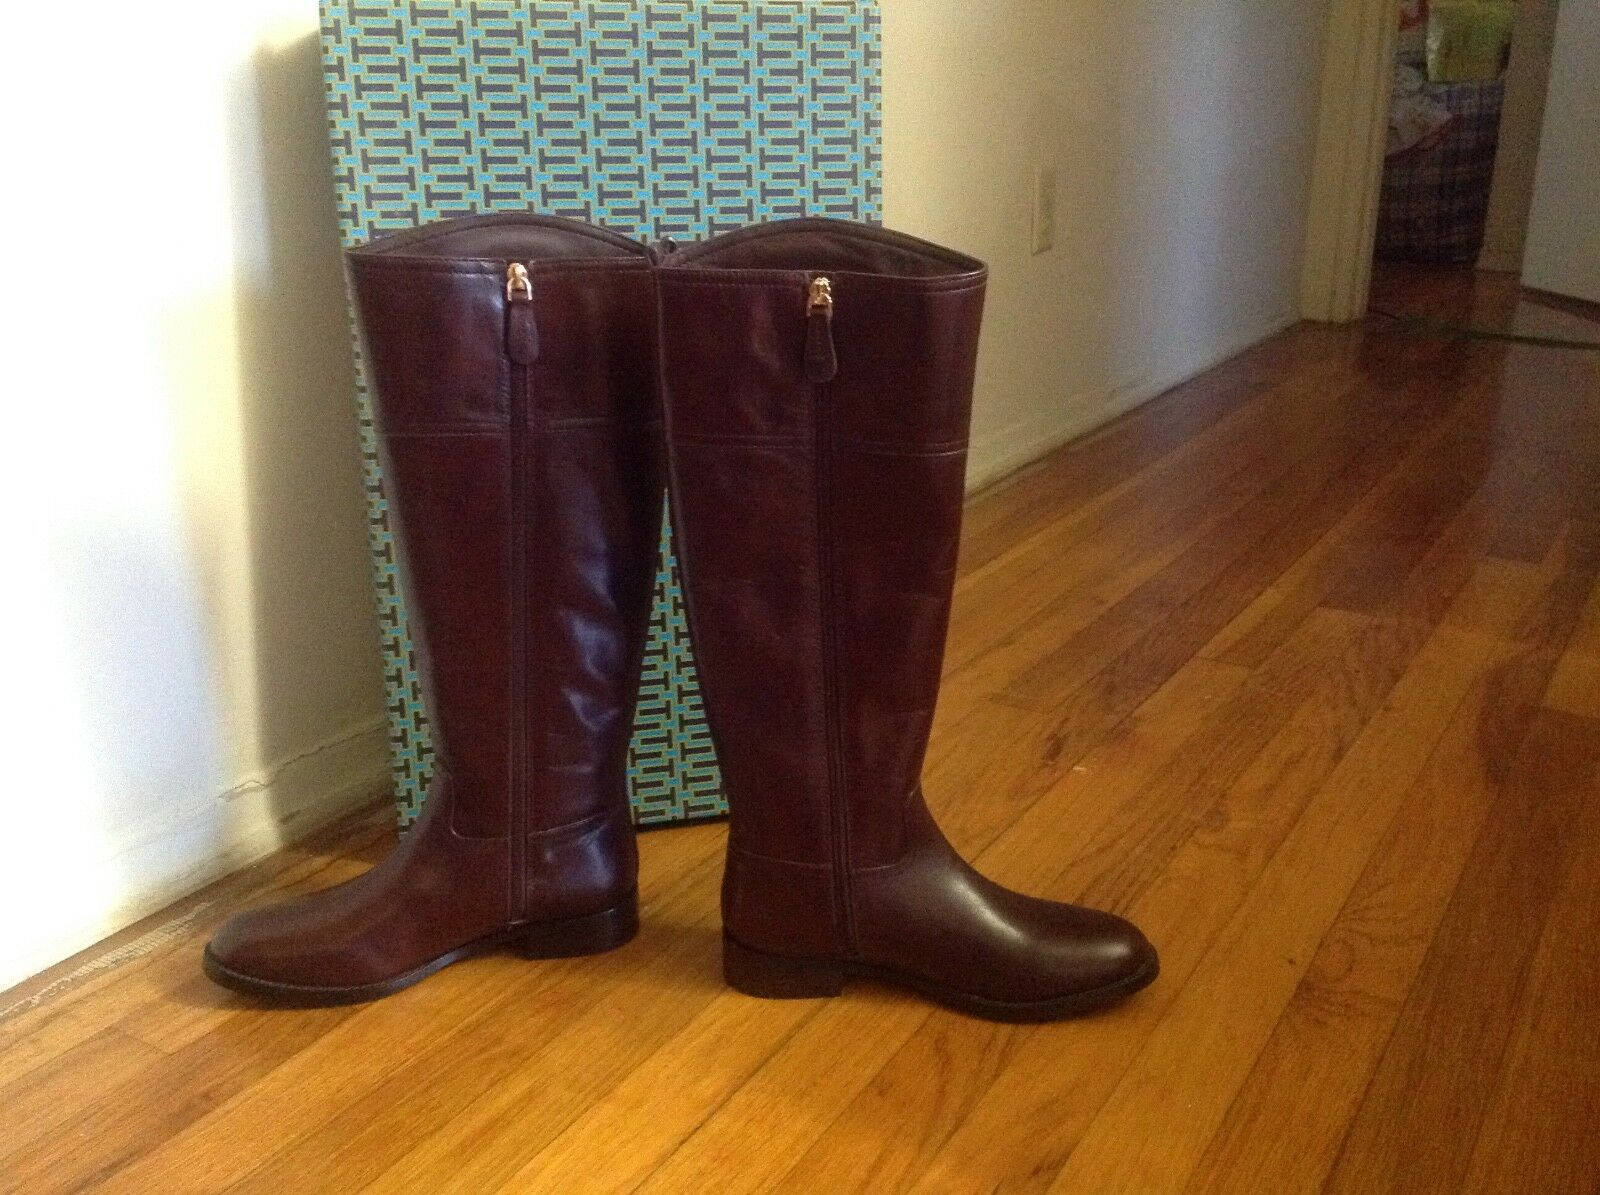 Tory Tory Tory burch kiernan 35MM boot- galleon leather color almond 7M 7439a6